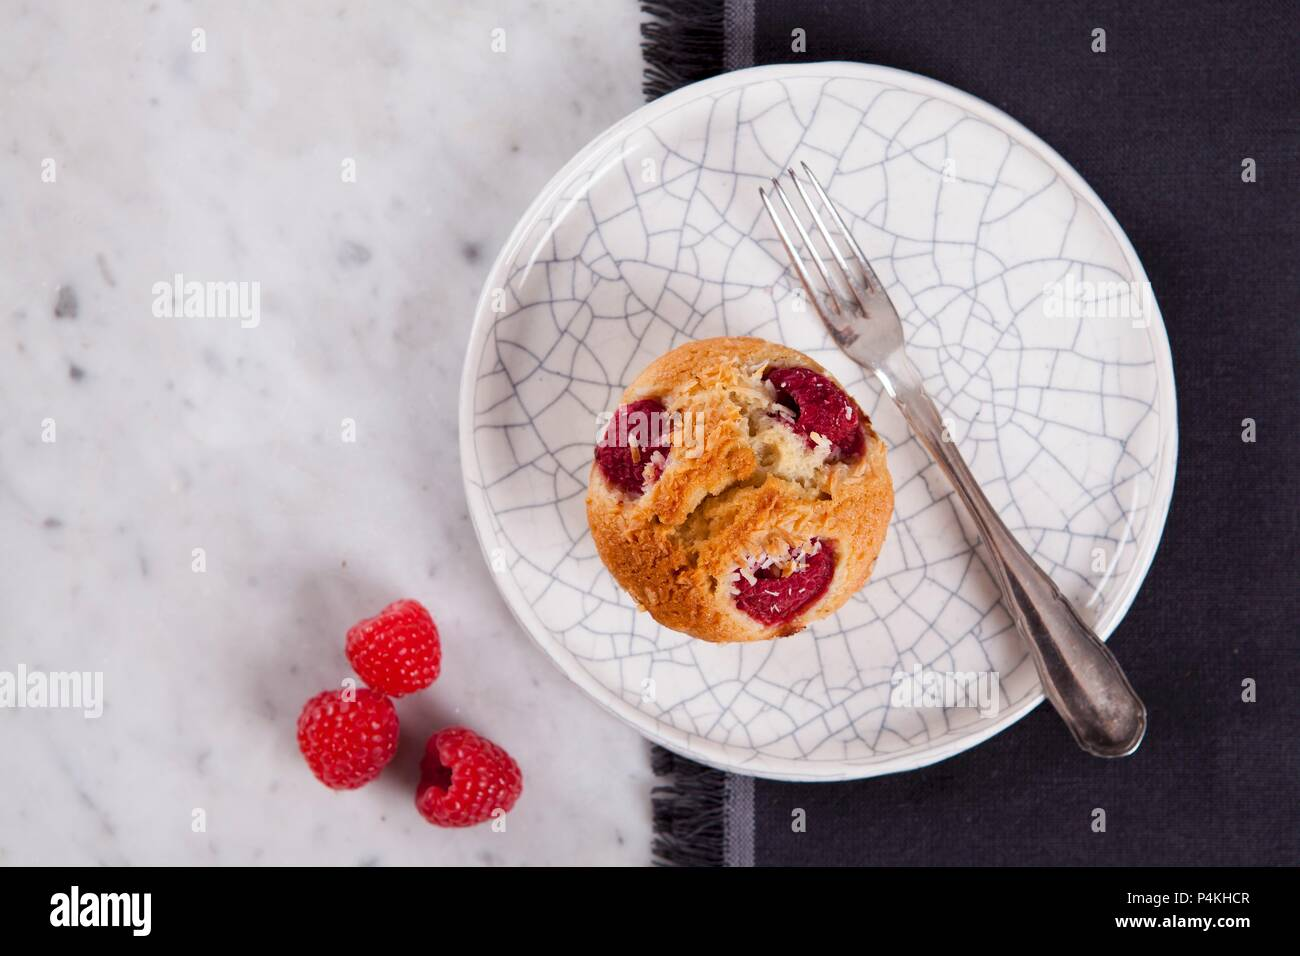 A raspberry financier with coconut - Stock Image